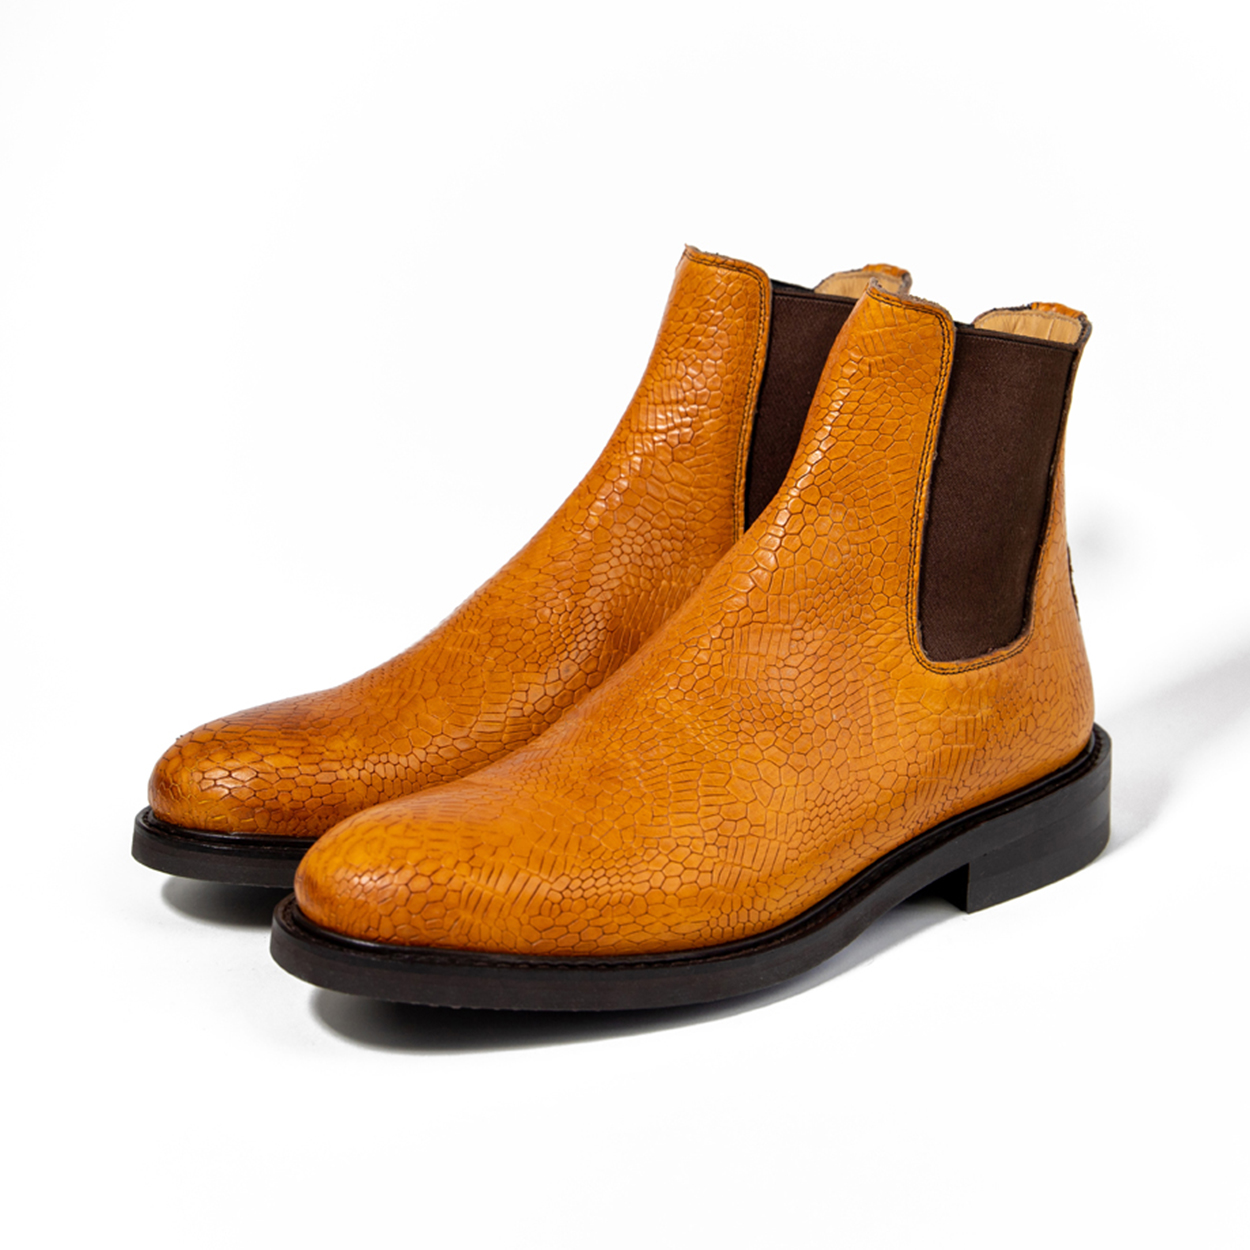 Mustard Goodyear welted Chelsea boots